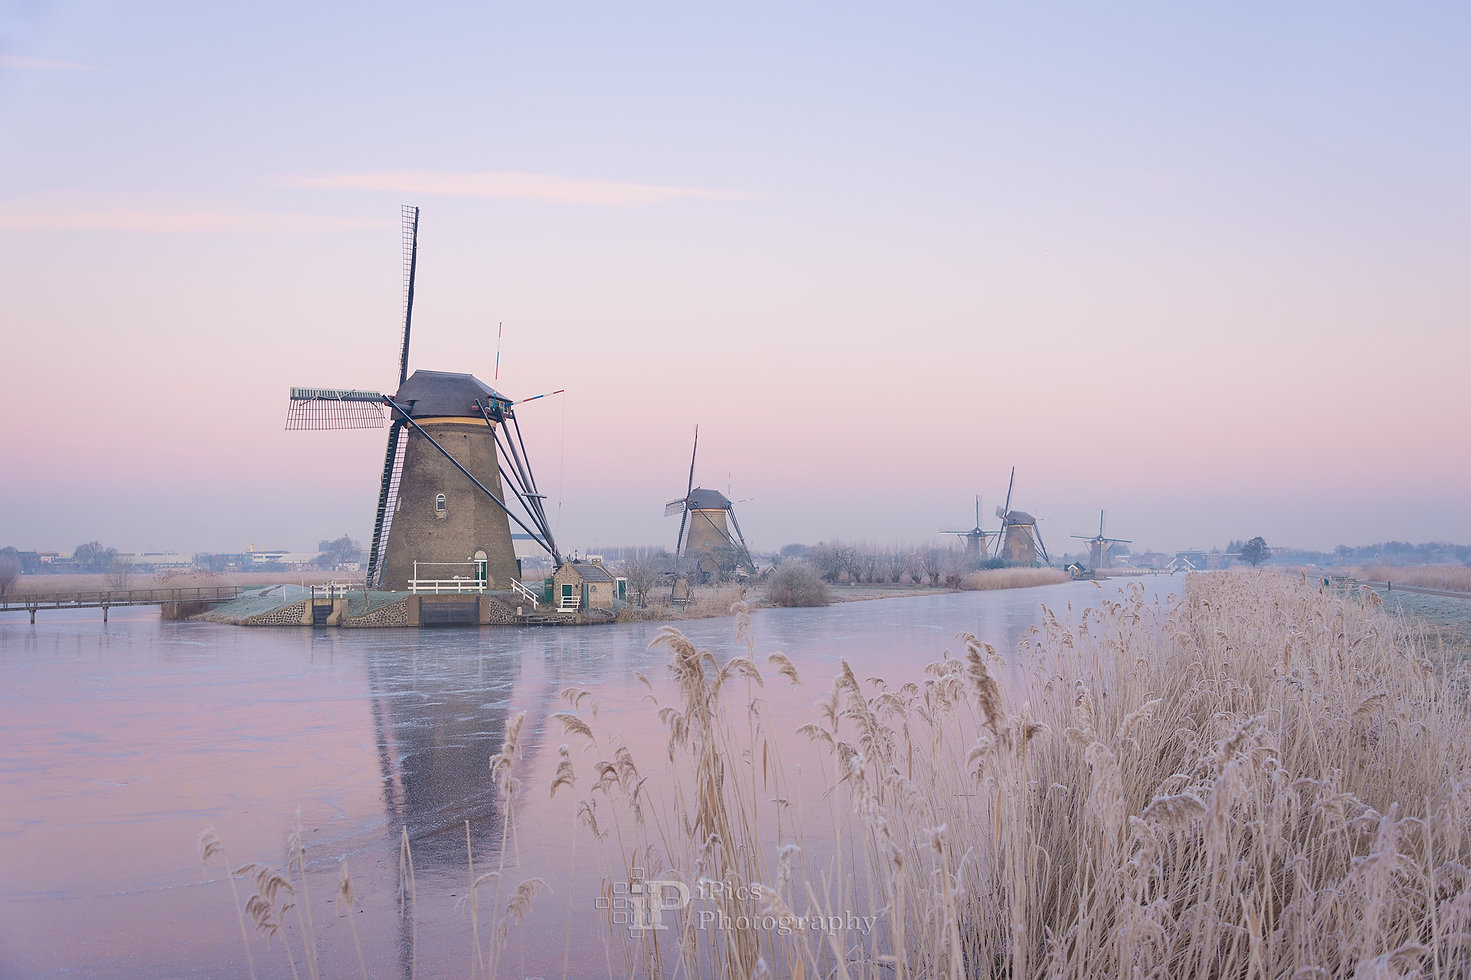 Windmills with reeds and ice in the soft morning light of a winter sunrise resulting in pastel hues and creating a frozen fairy tale landscape in Kinderdijk, the Netherlands.